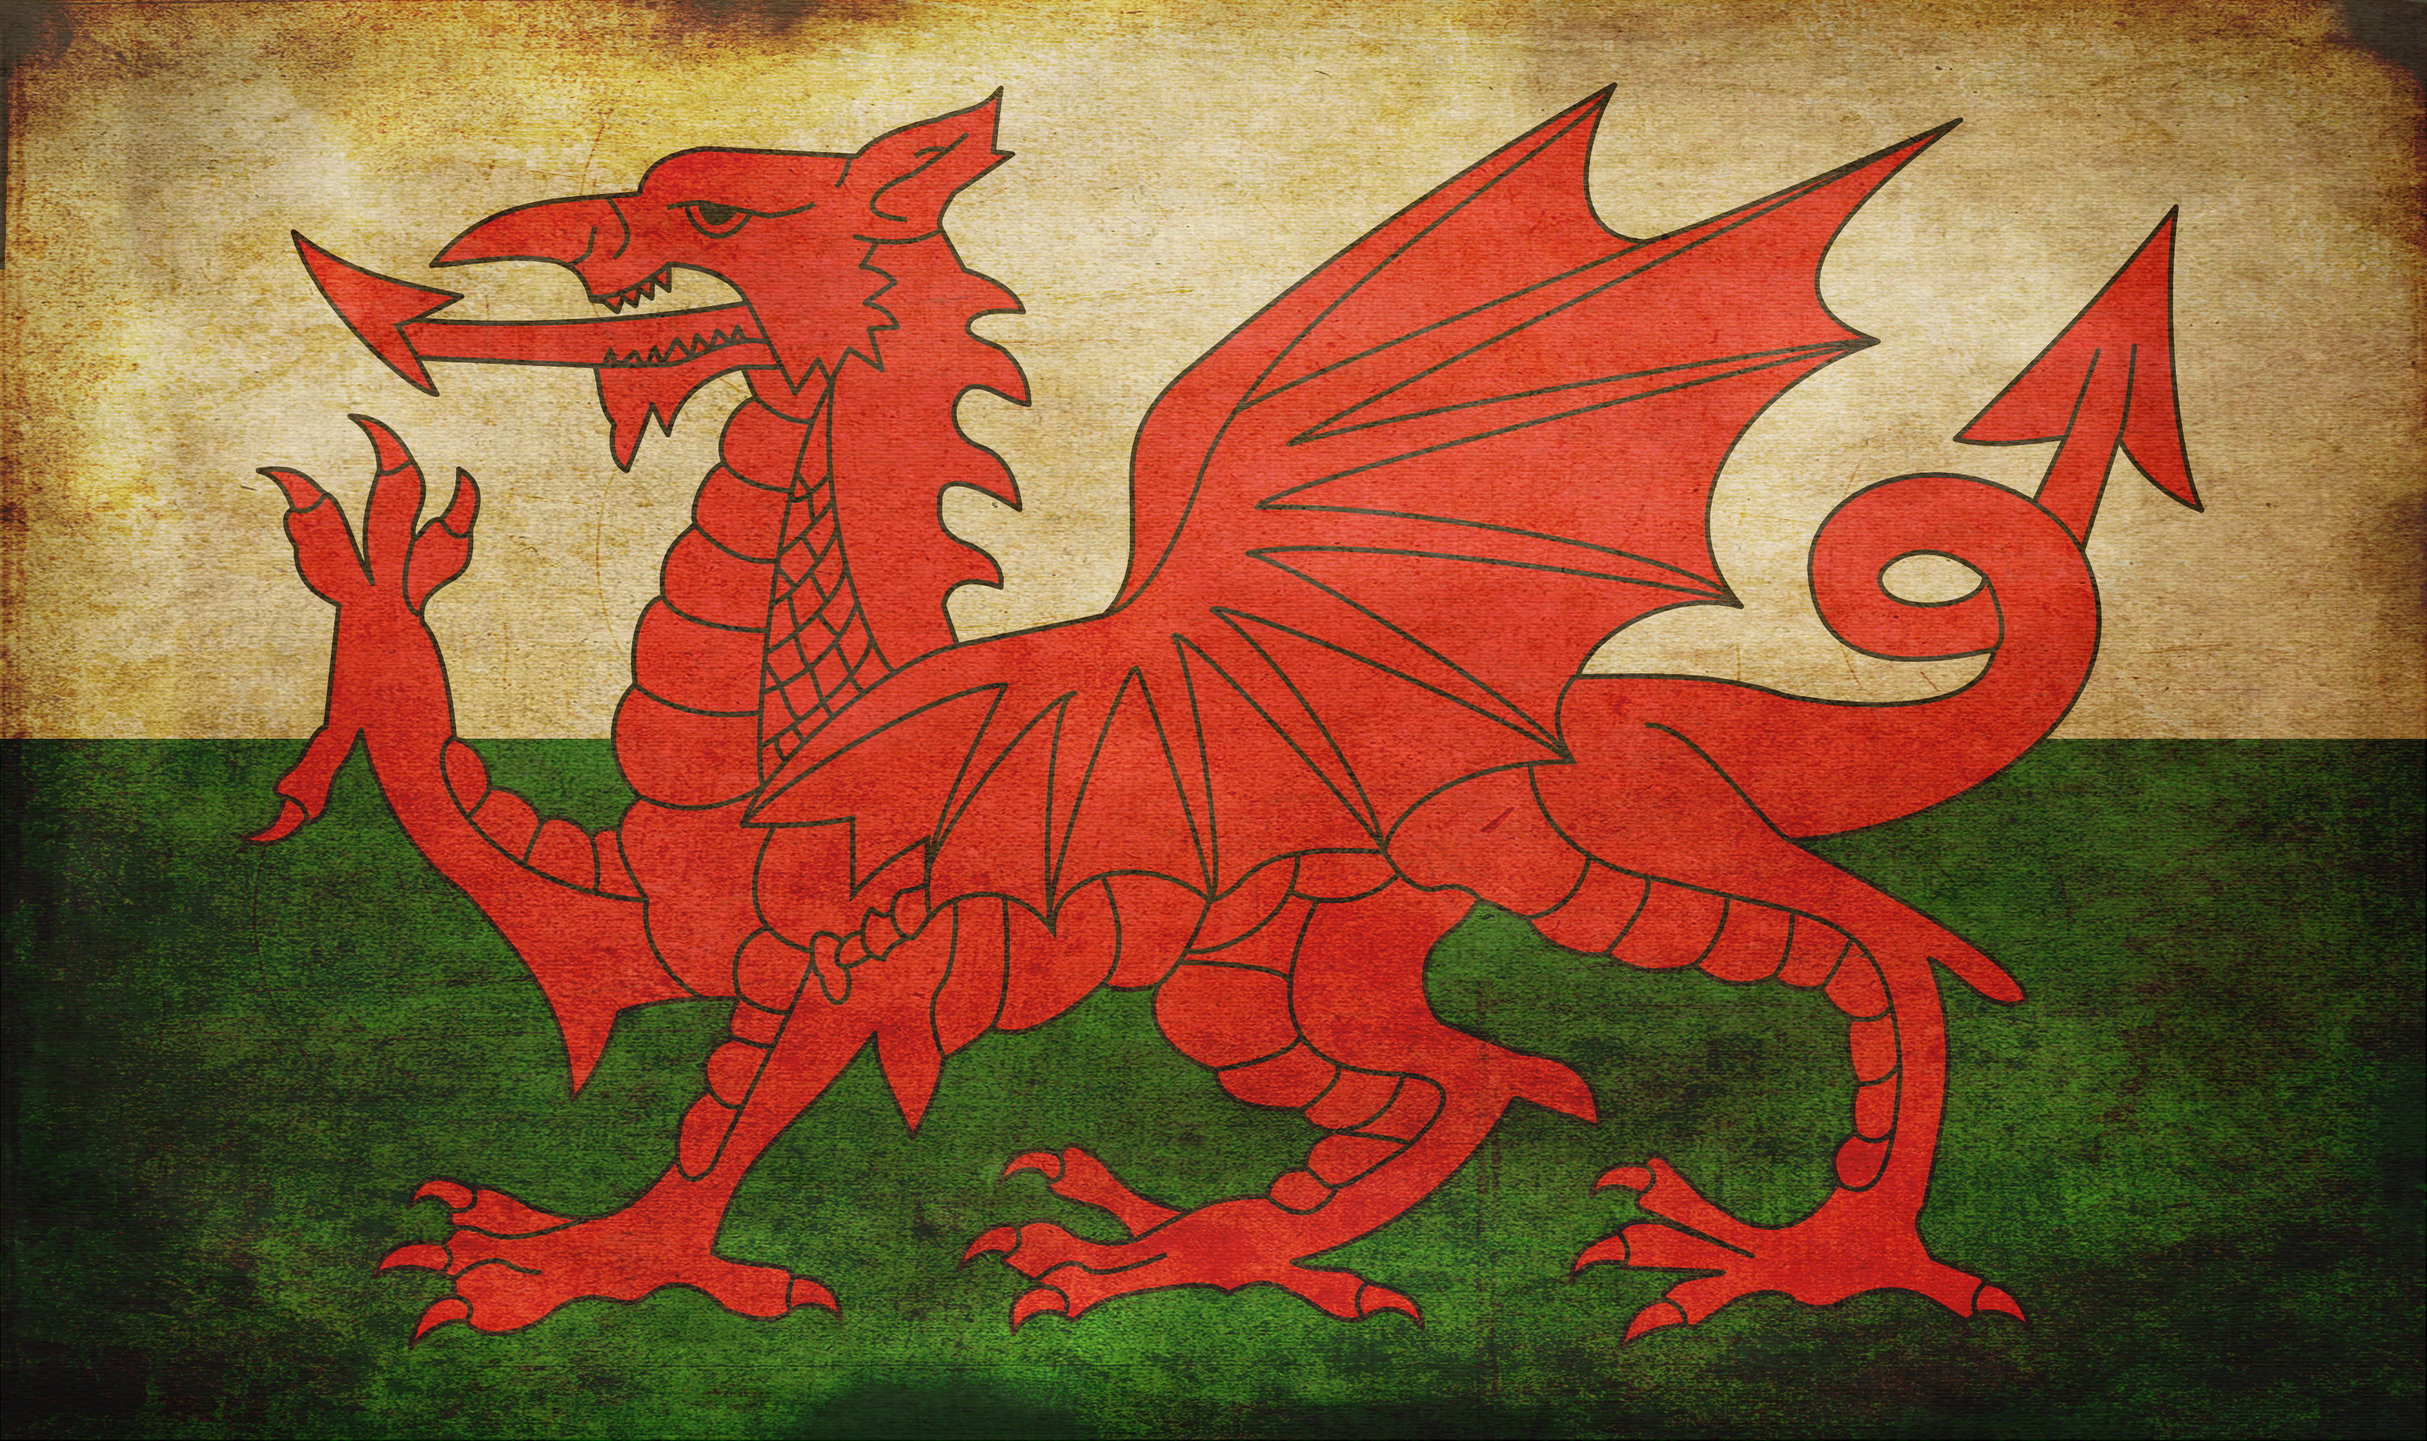 Wales - Grunge by tonemapped on DeviantArt